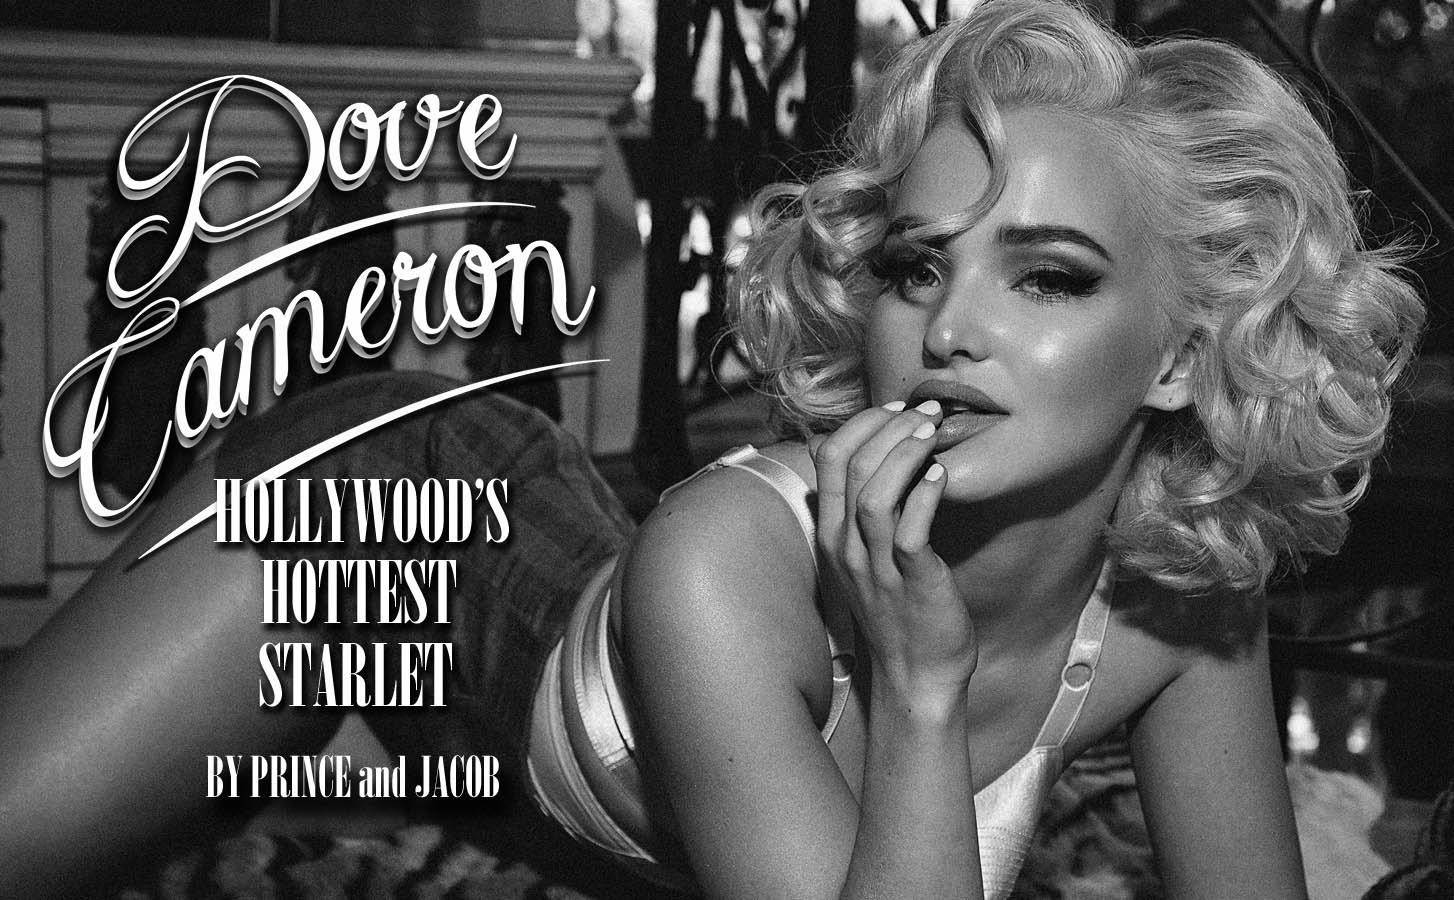 Dove Cameron in her newest Marilyn Monroe-inspired photo shoot for Galore Magazine